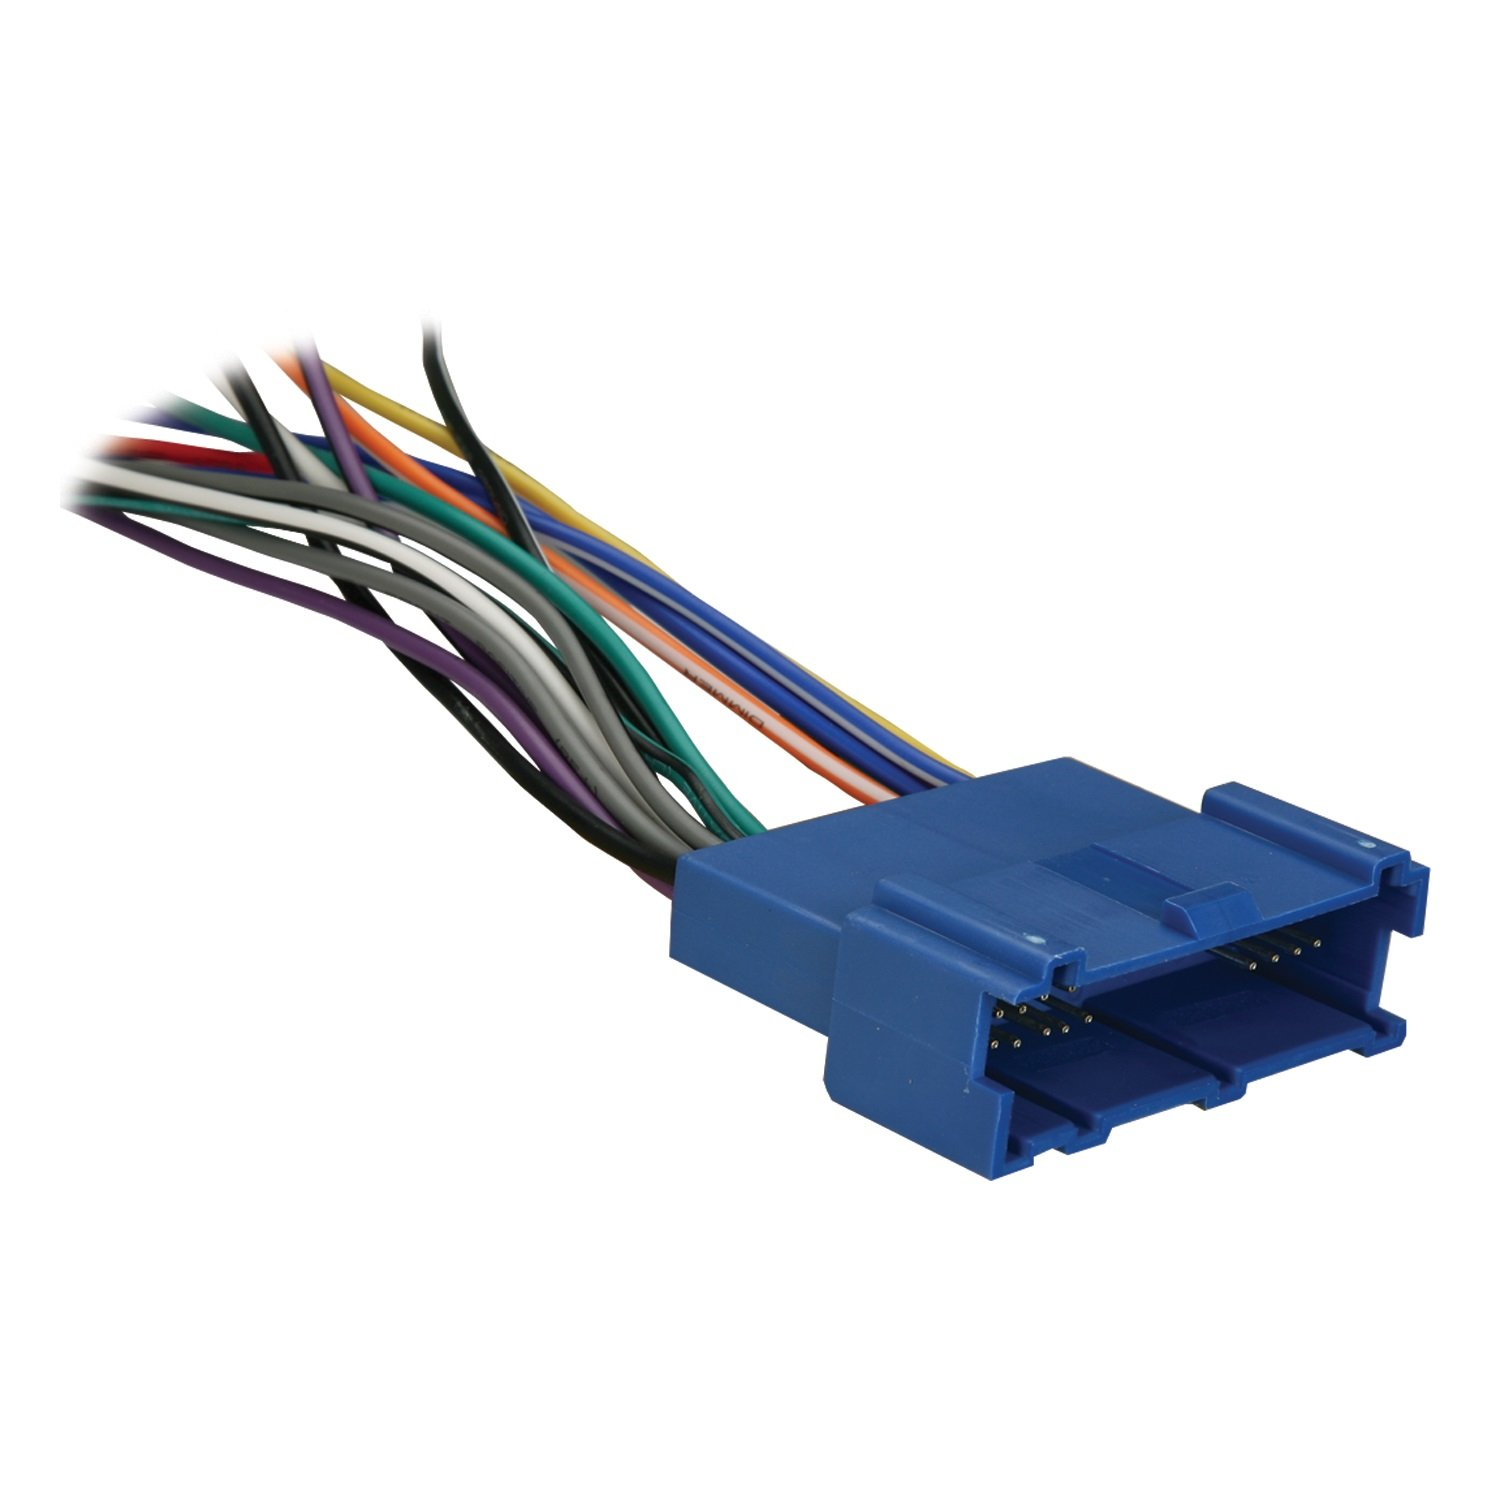 Amazon.com: Metra 70-2001 Radio Wiring Harness for GM 94-04: Car Electronics